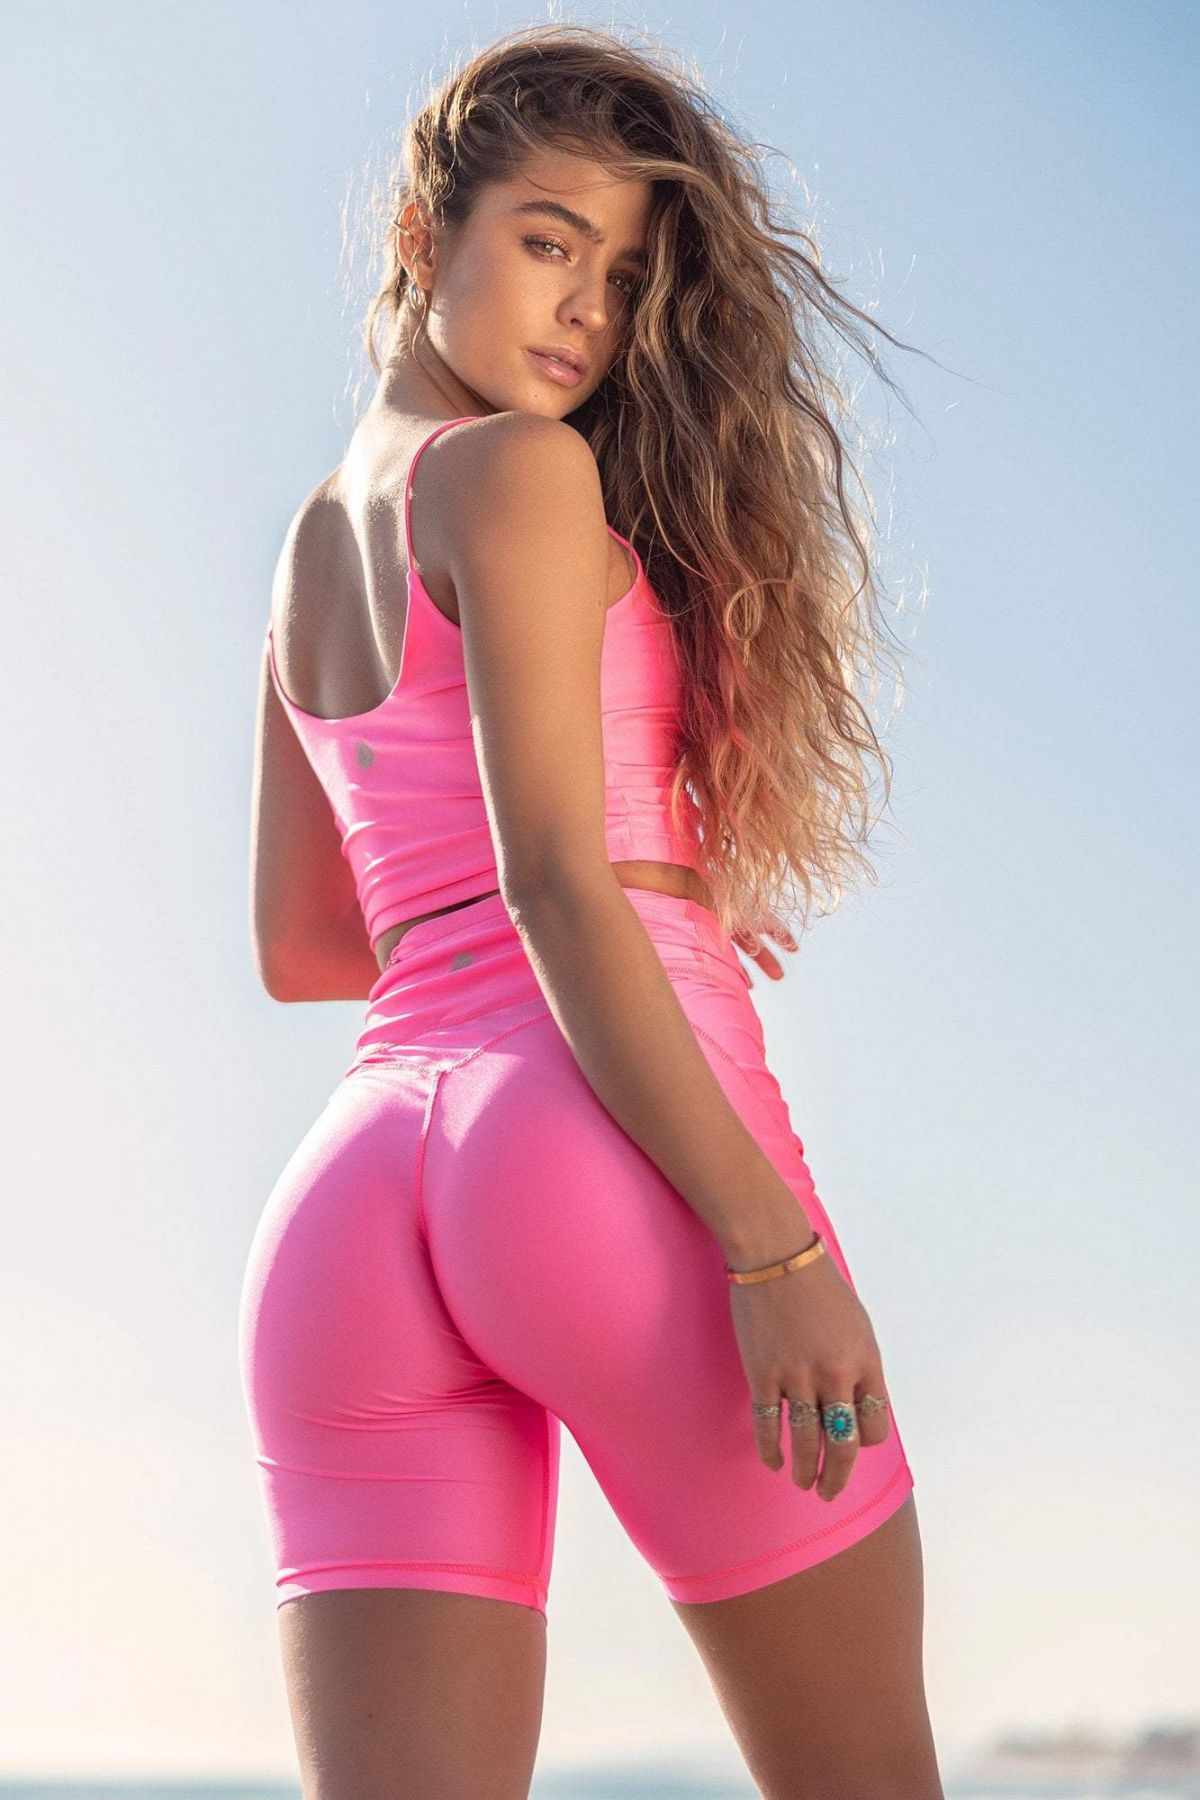 Sommer Ray photo 54 of 100 pics, wallpaper - photo ...